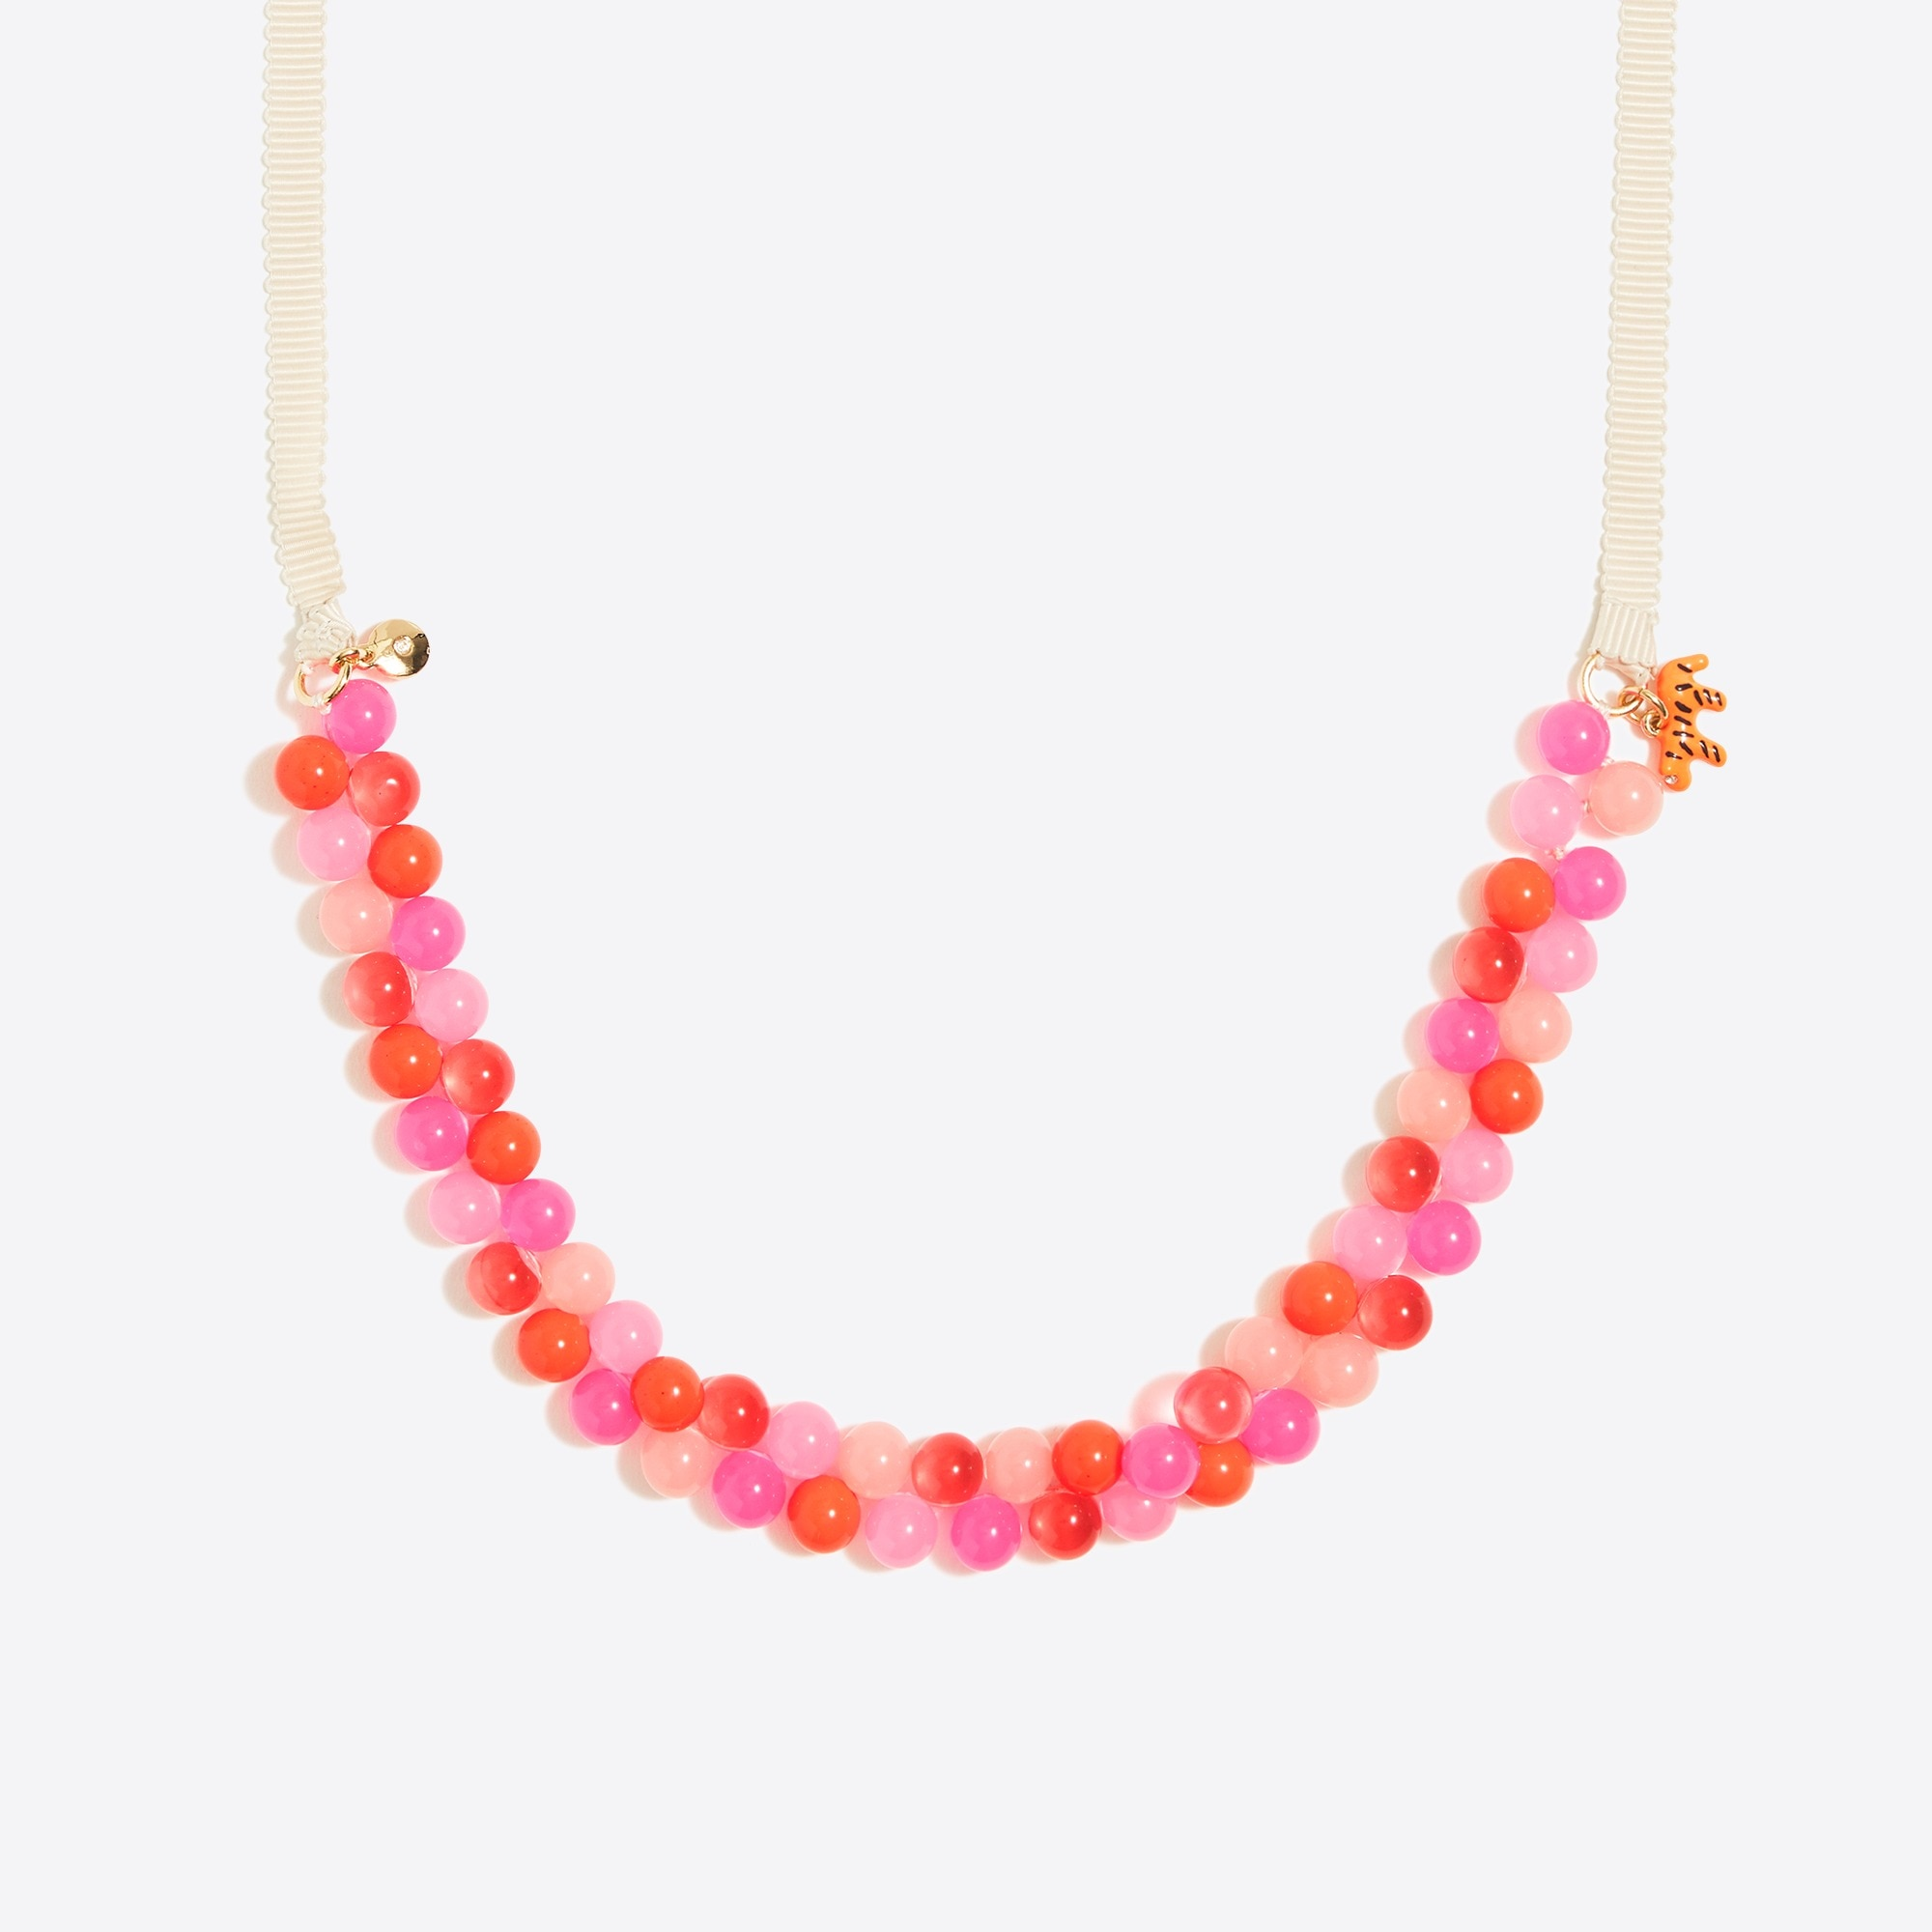 factory girls Girls' two-tone gumball necklace